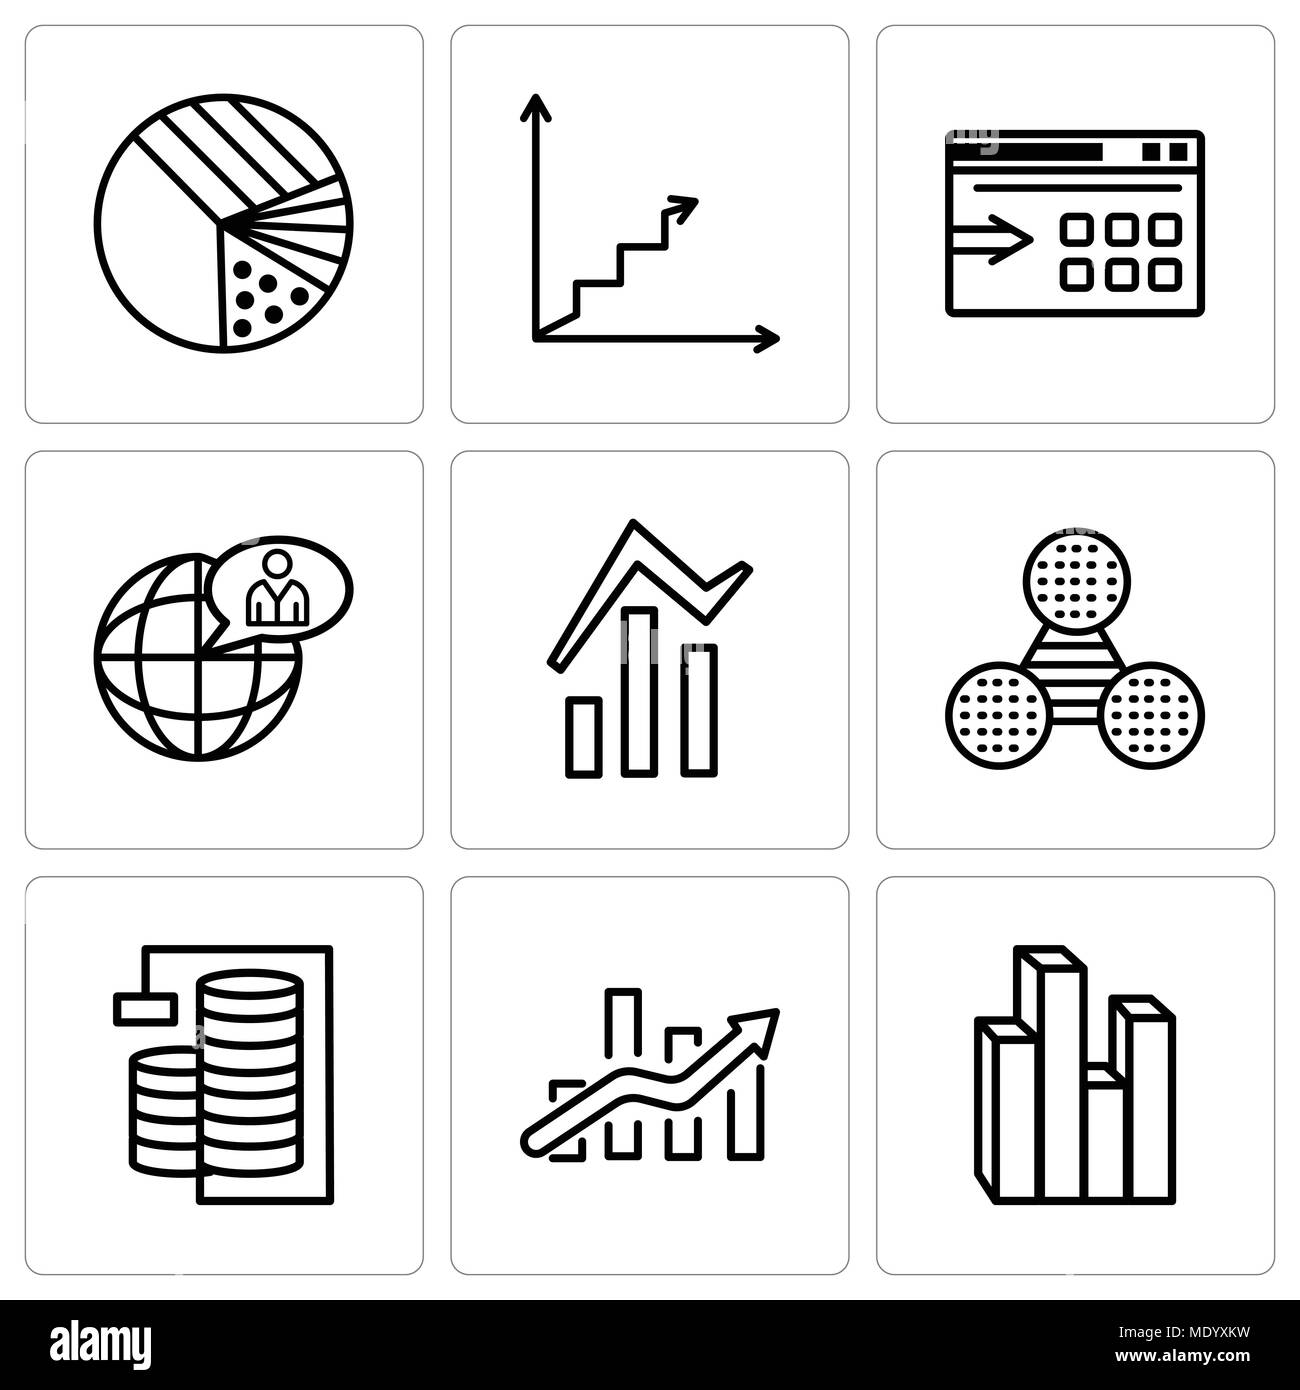 Set Of 9 simple editable icons such as Stream graphic, Bars chart, Database Analysis, Pie graphic comparison, Bars and data analytics, Global user, Da - Stock Image